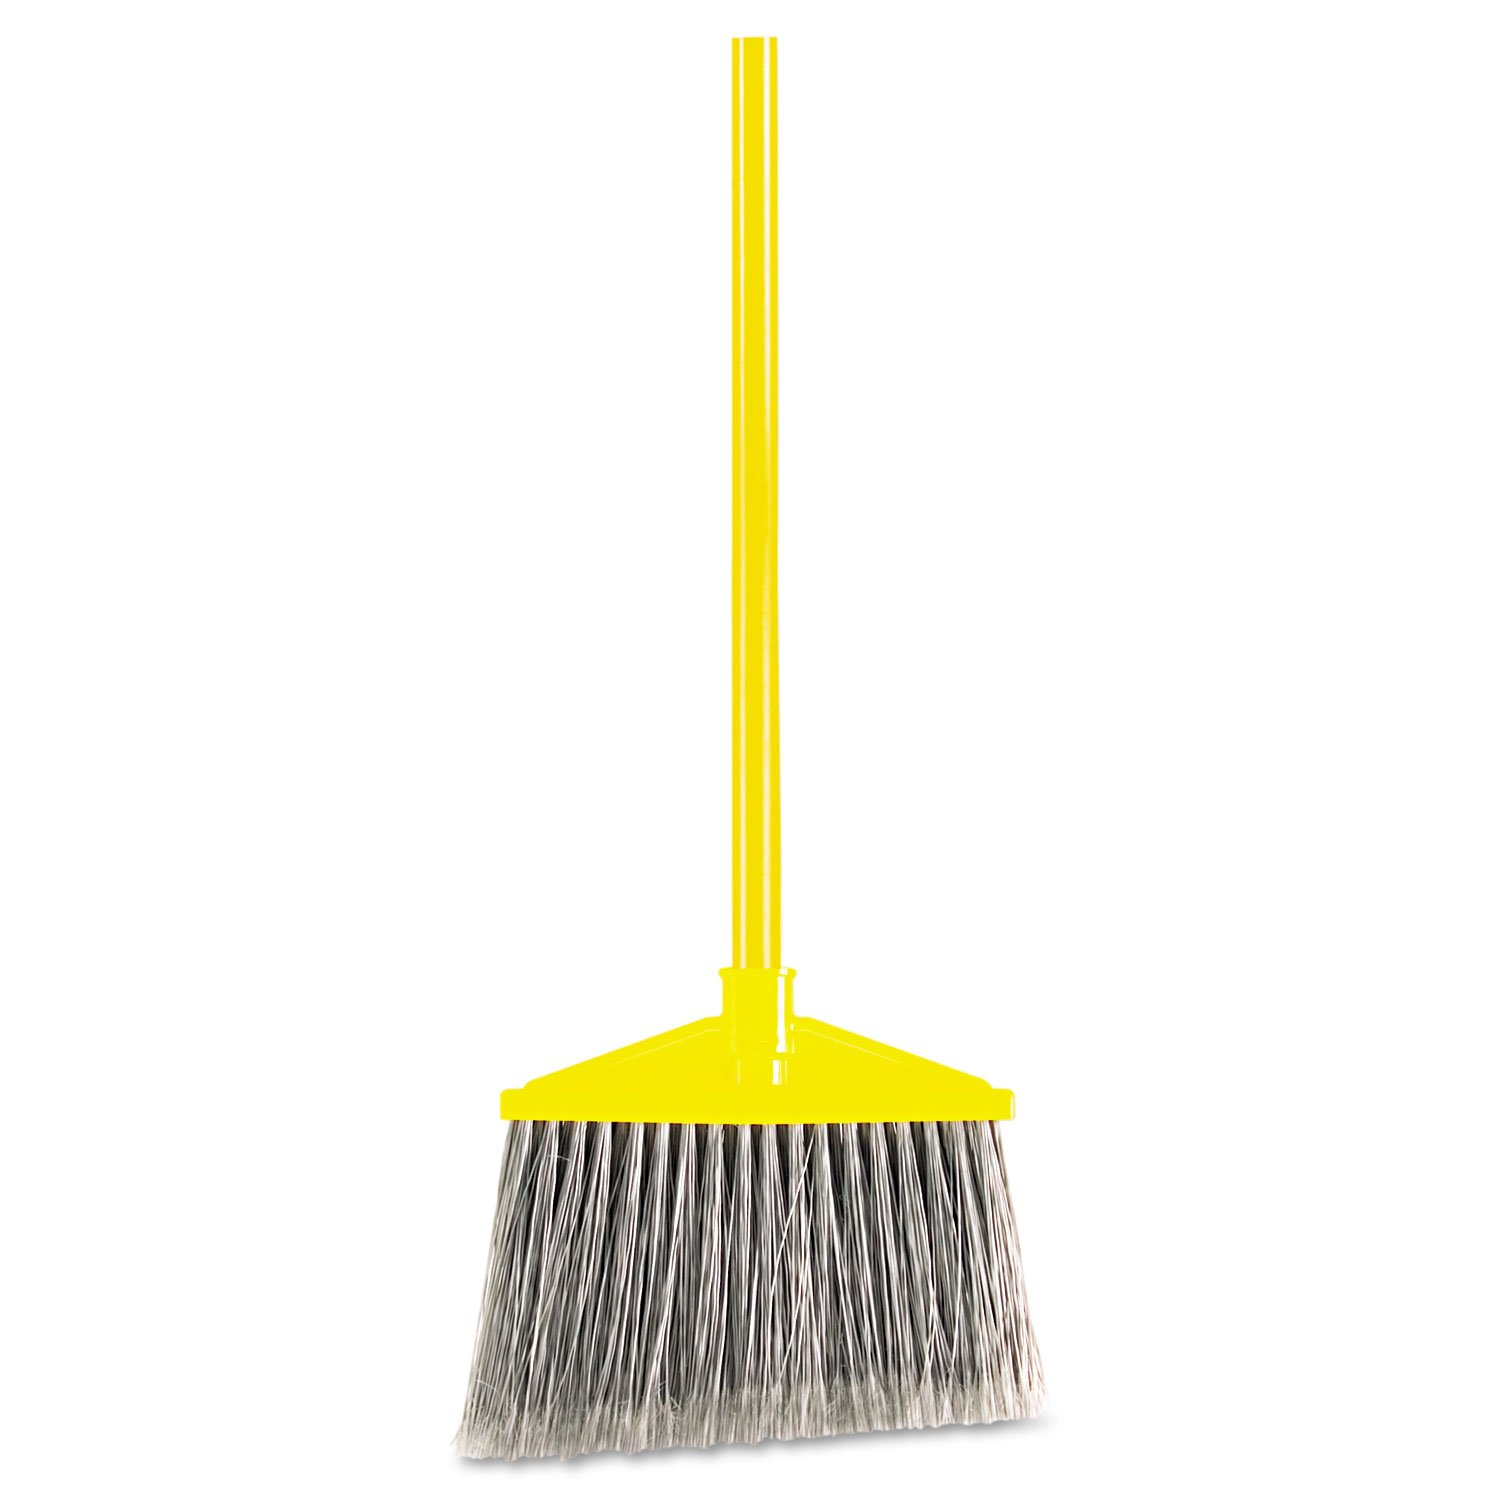 Rubbermaid Commercial 6375 10-1/2'' Sweep Face, Gray Color, Polypropylene Fill Flagged-Tip Angle Broom with Vinyl Coated Metal Handle